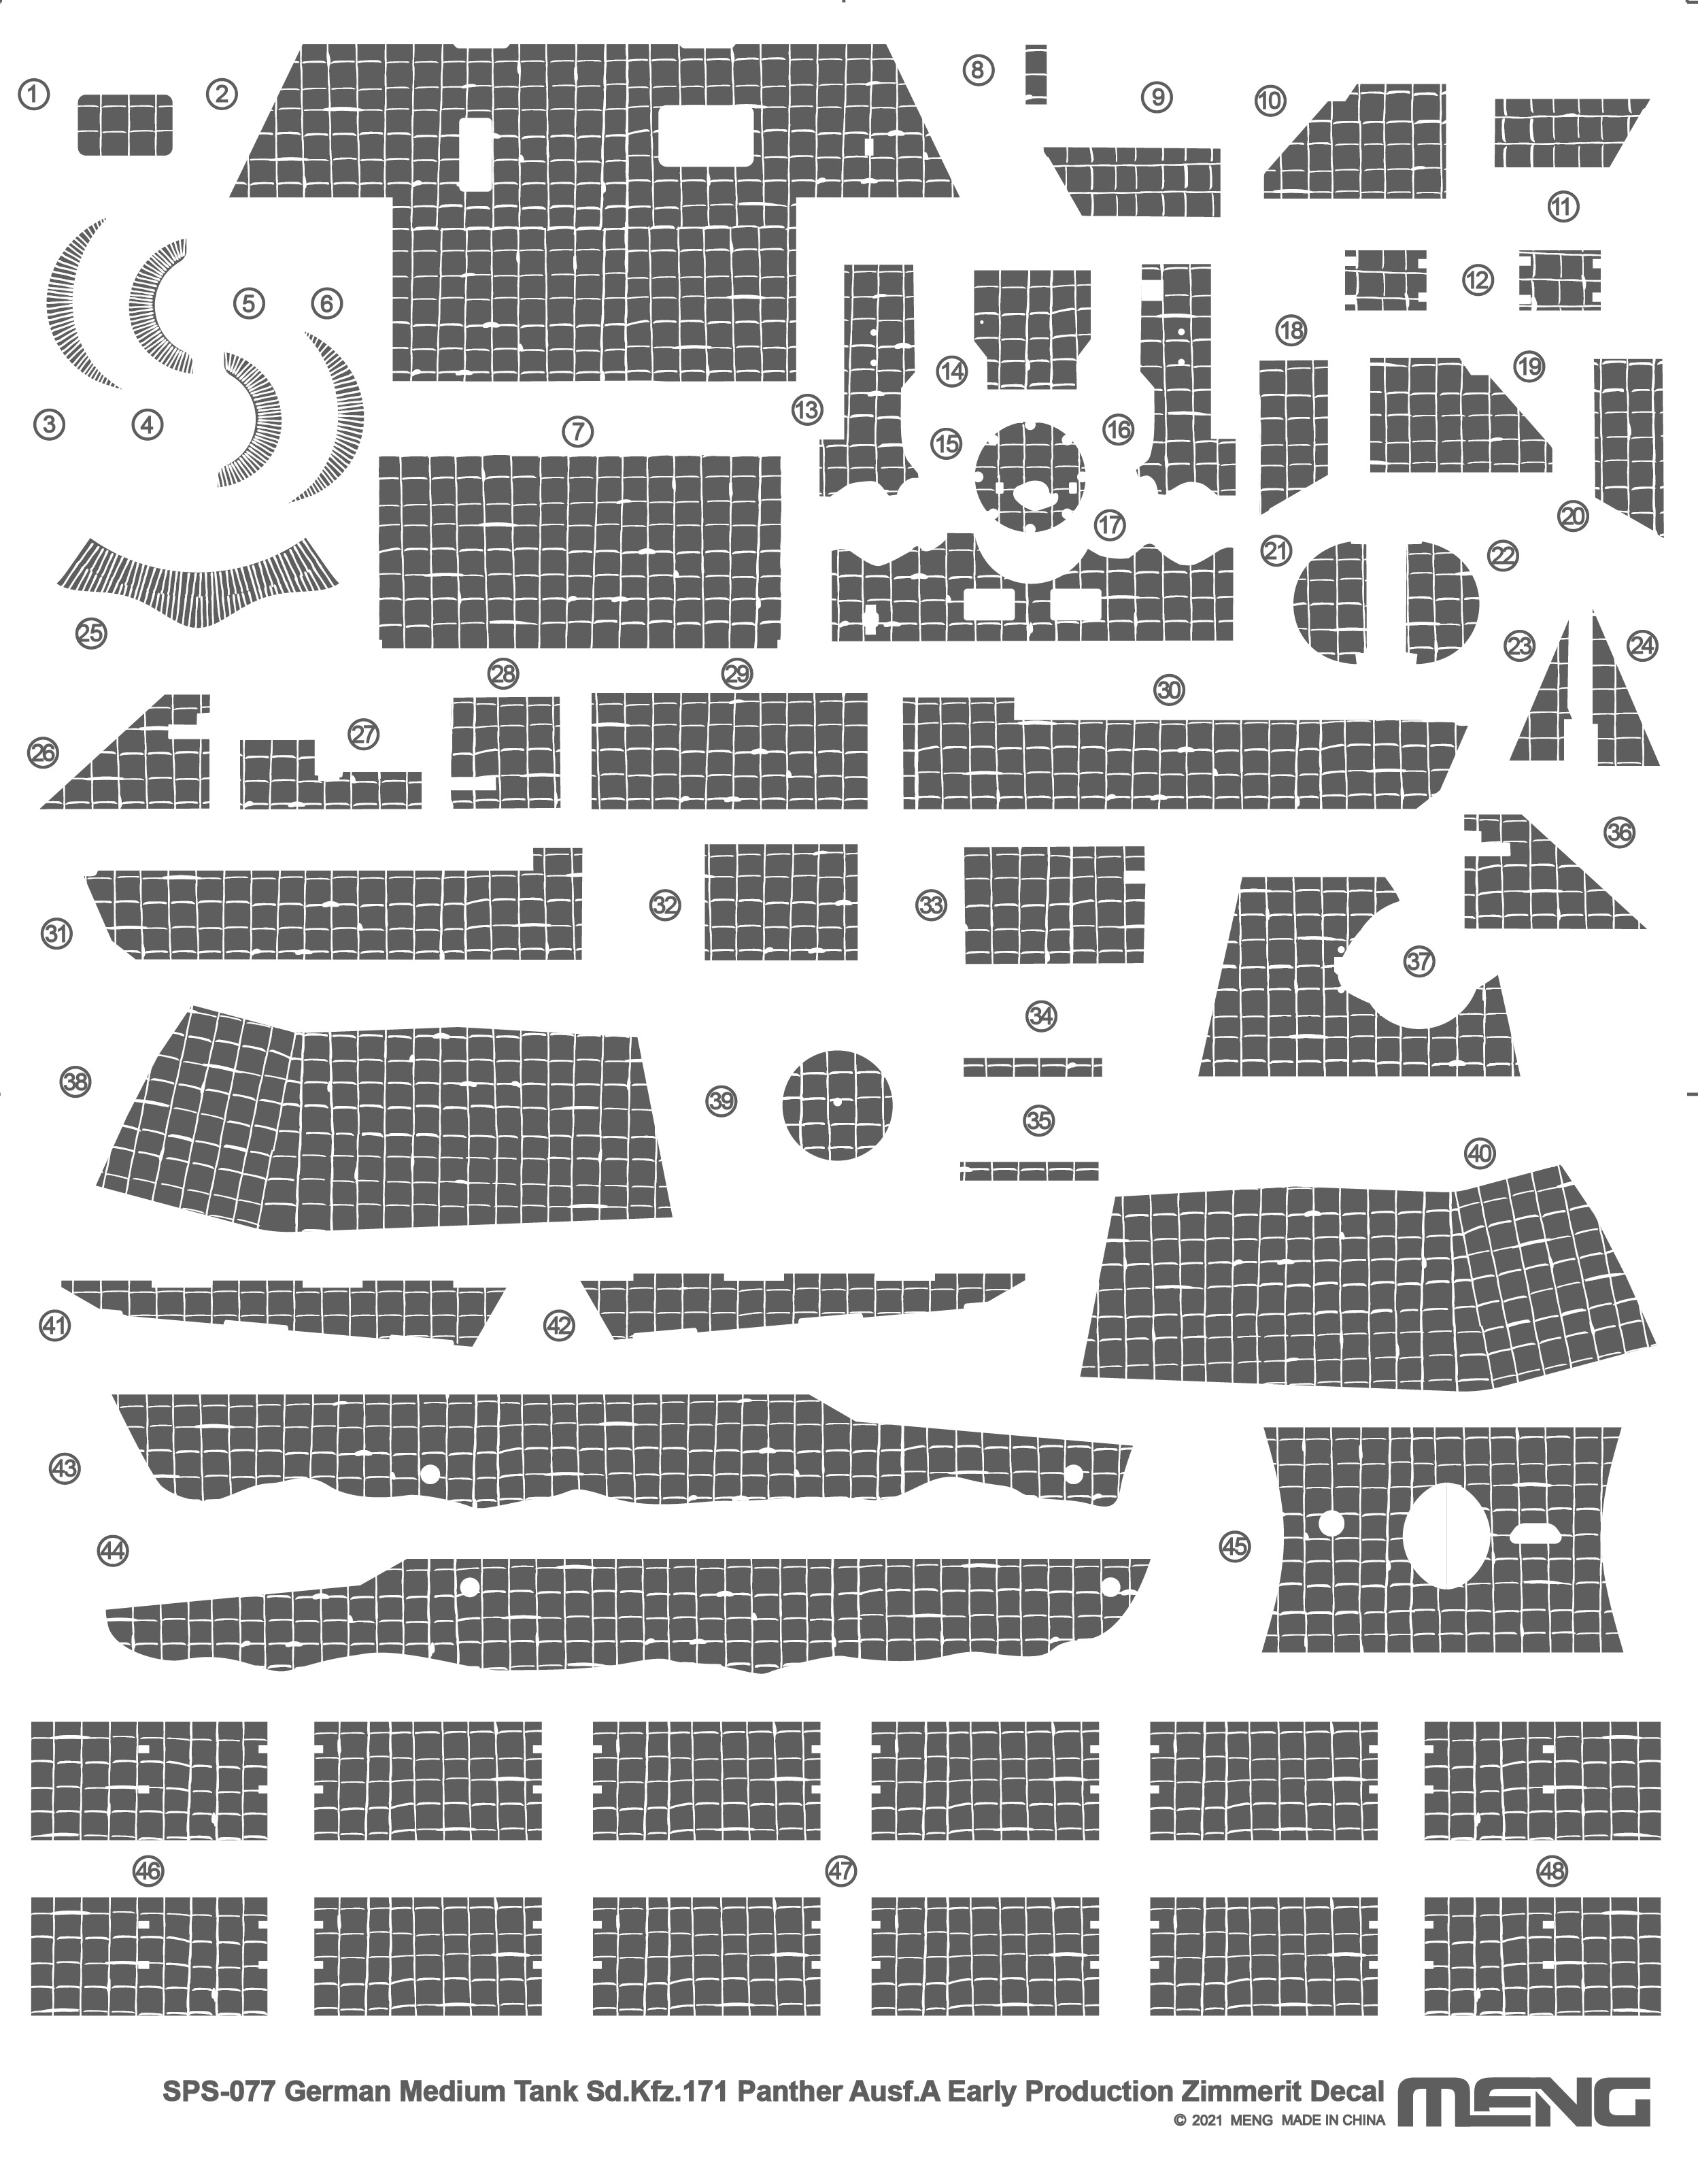 Meng German Medium Tank Sd.Kfz.171 Panther Ausf.A Early Production Zimmerit Decal